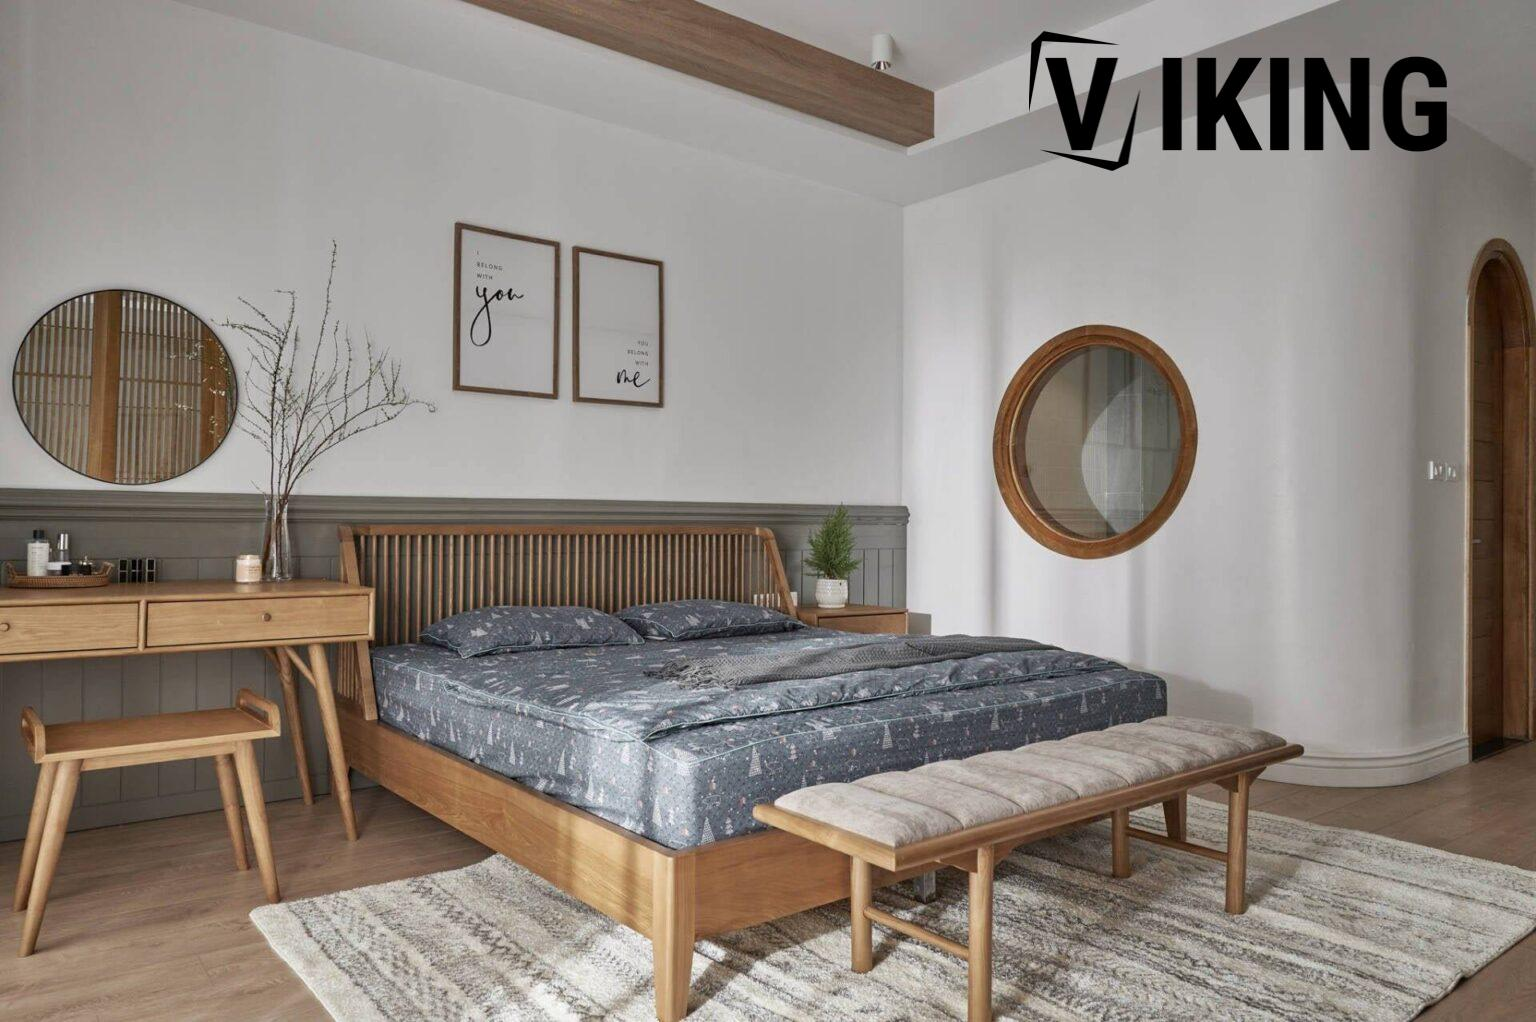 3D Bed Model 218 Free Download By Nguyen Huu Cong 1536x1022 2